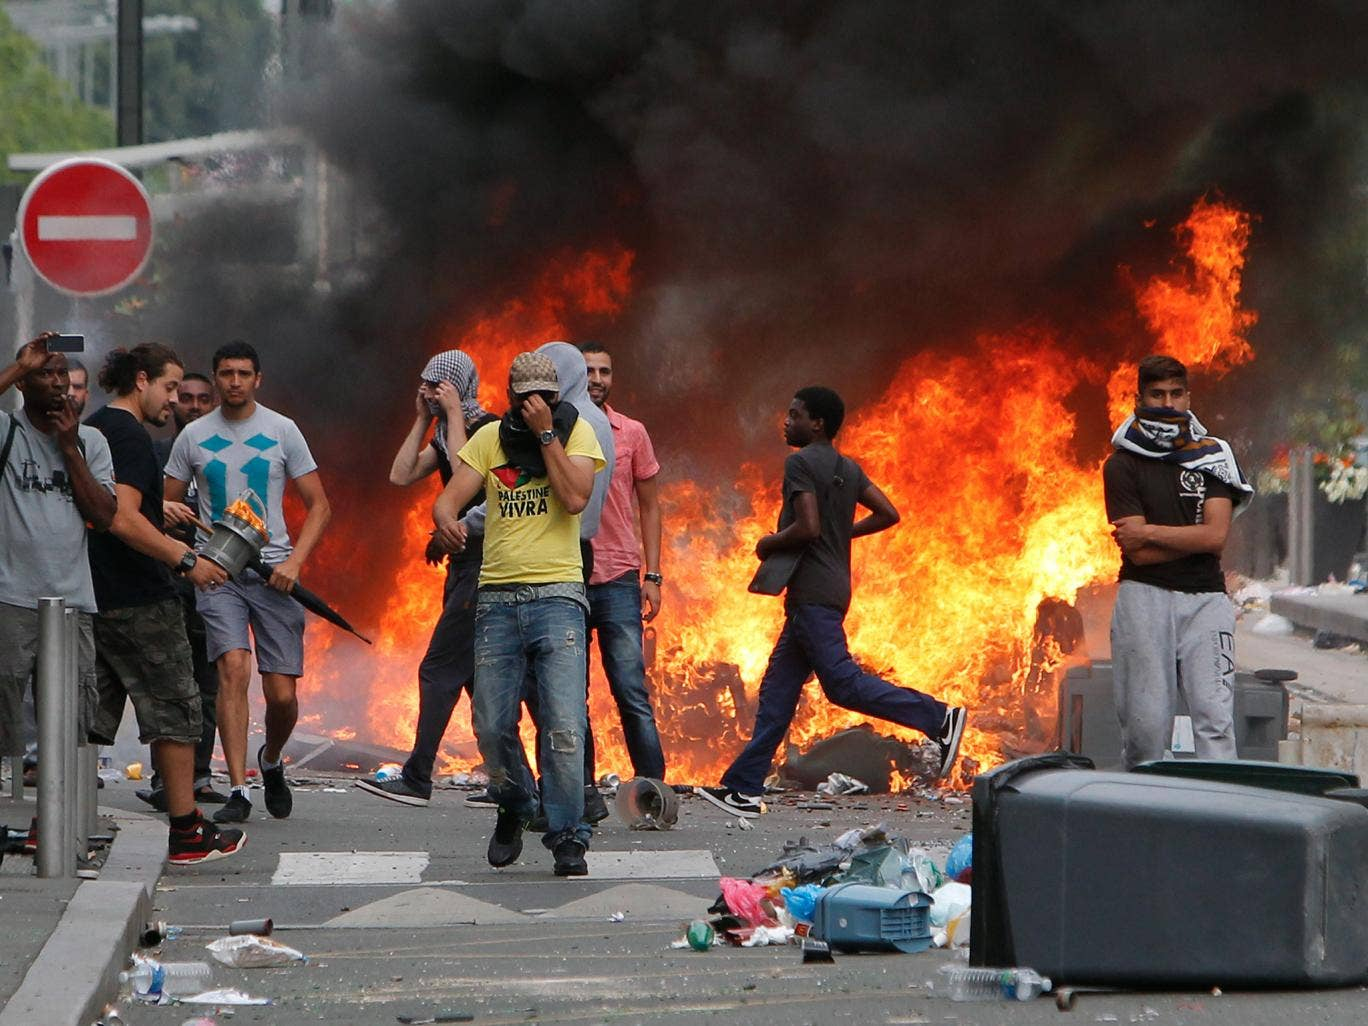 Rioters face riot police, following a pro-Palestinian demonstration, in Sarcelles, north of Paris.  French youth defying a ban on a protest against Israel's Gaza offensive went on a rampage in a Paris suburb, setting fire to cars and garbage cans after a